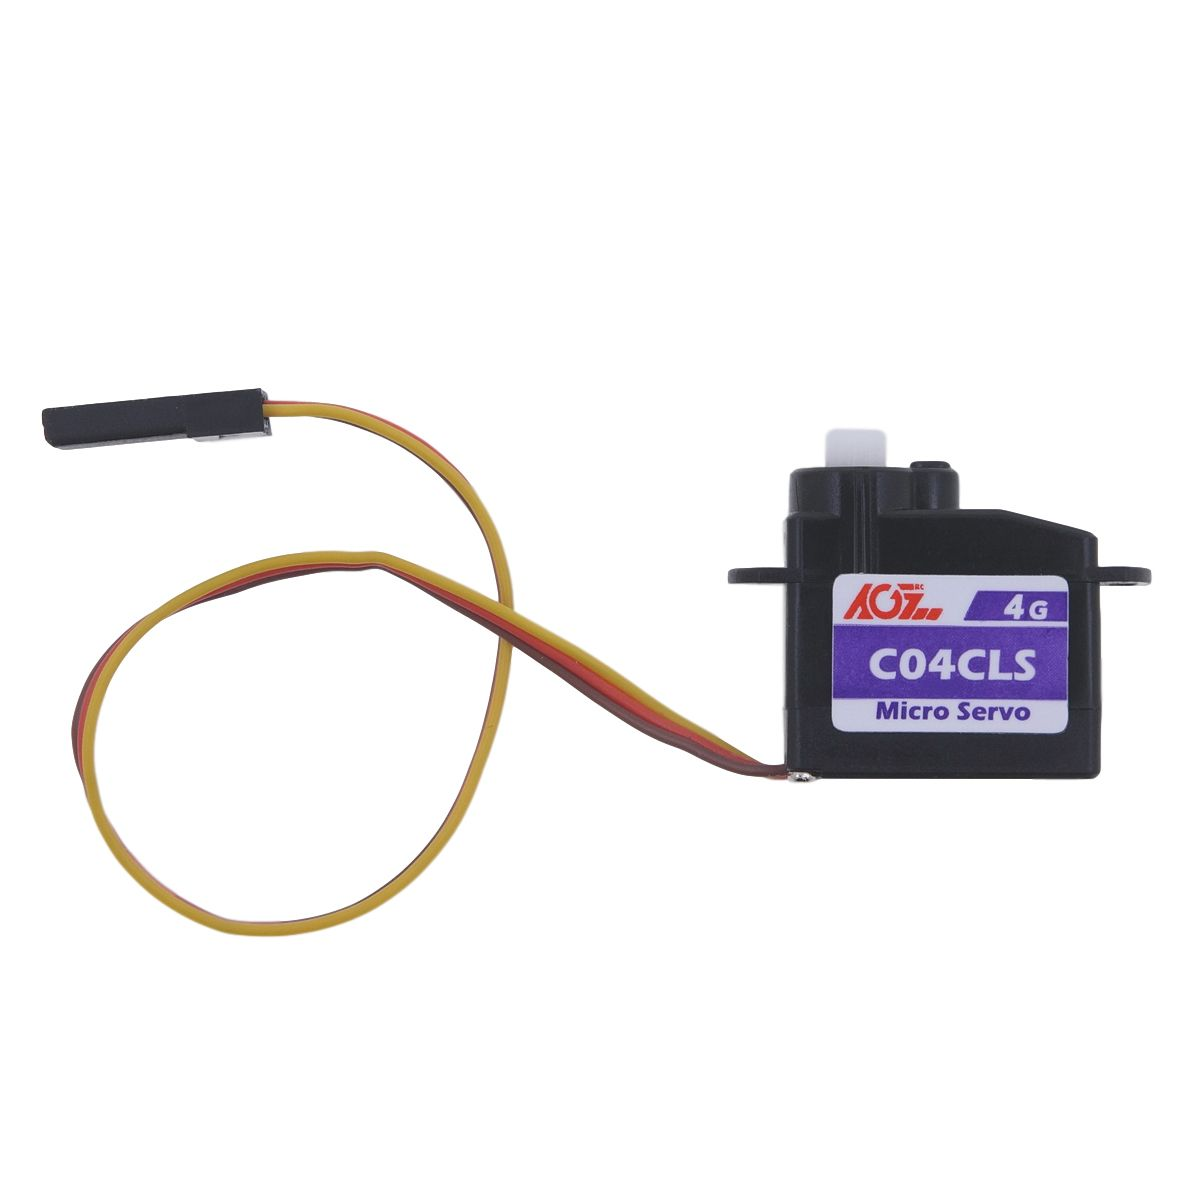 AGFRC C04CLS Super Light 4.3g Fast Response Plastic Micro Servo For 1S Powered Applications